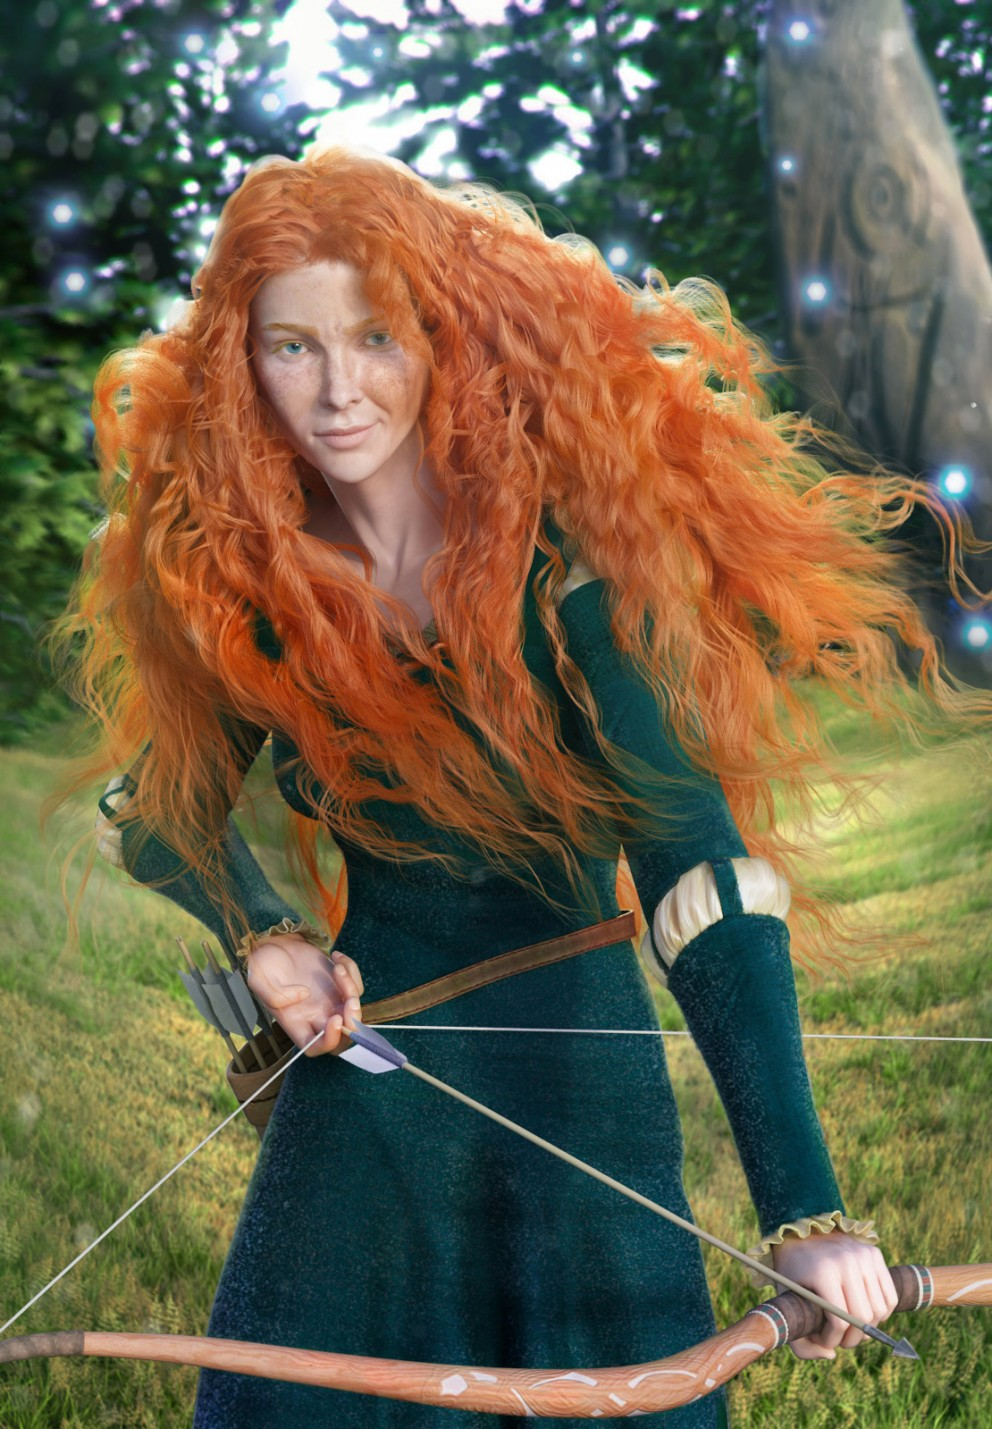 Portrait Merida 3d Concept Art Photoshop